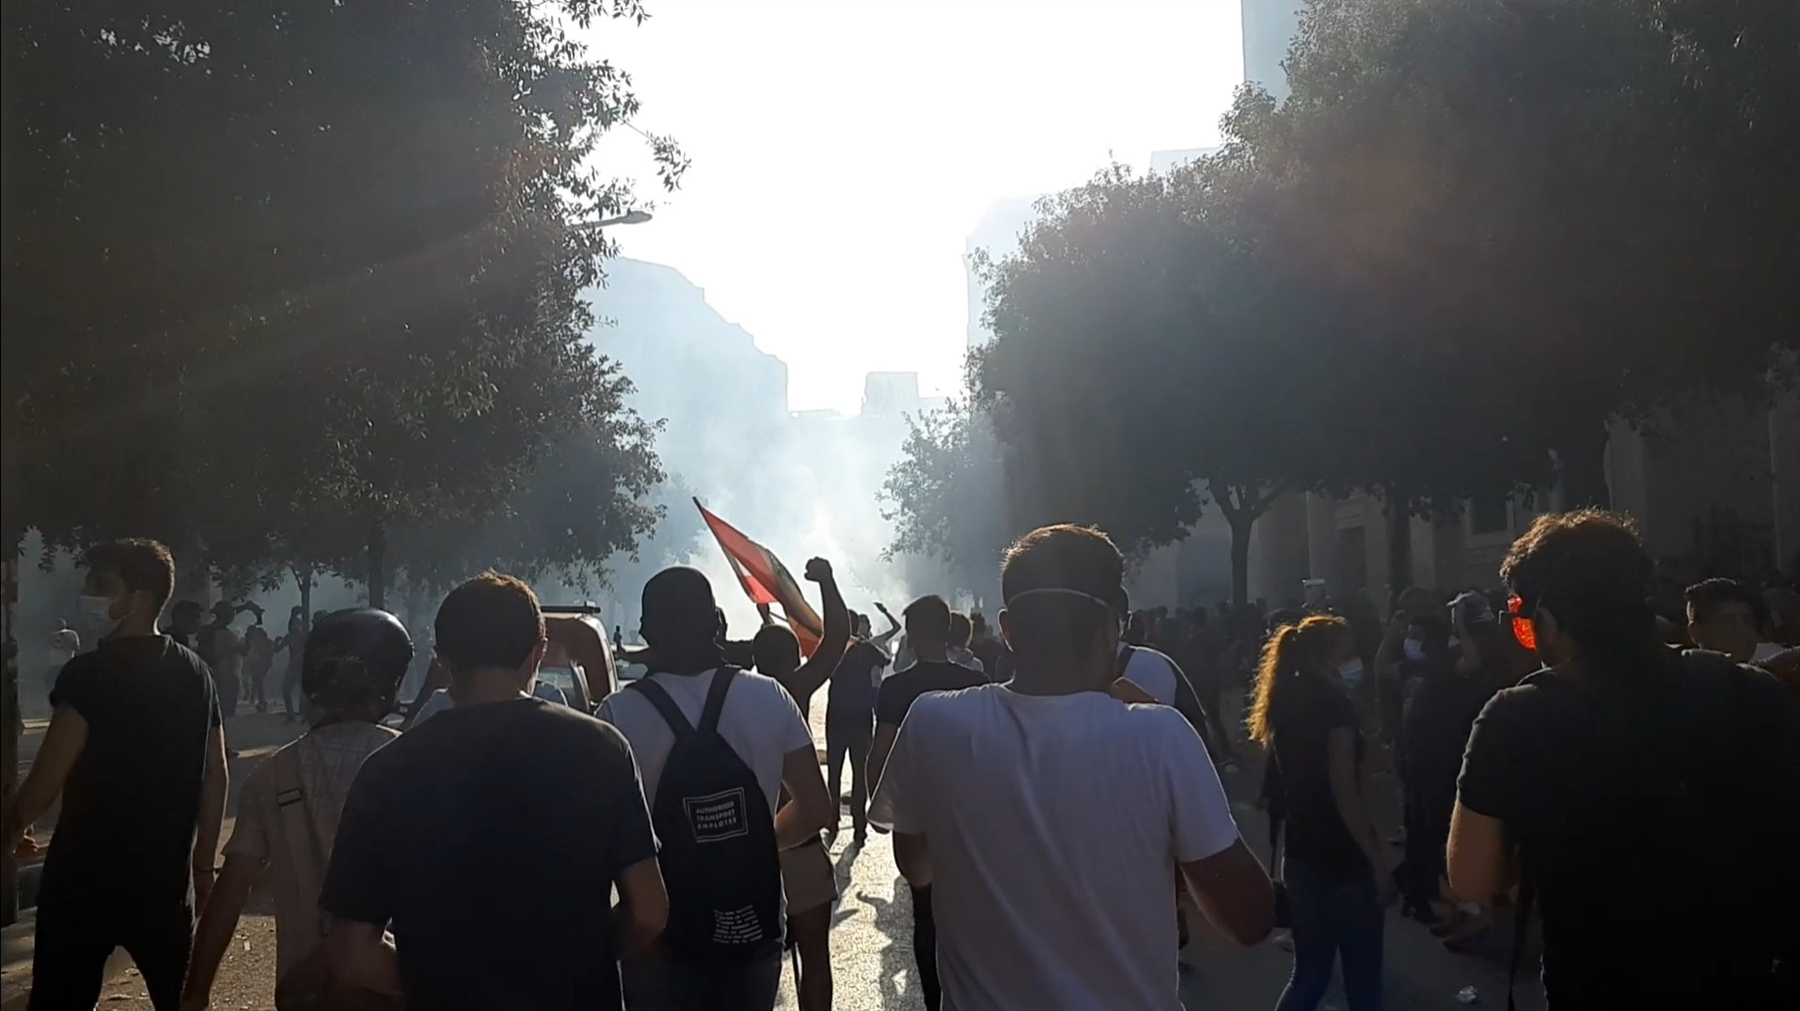 Protest on Saturday, August 8, when tear gas and live ammunition were fired at protesters, and more than 700 were injured (Photo: Dounia Salamé)